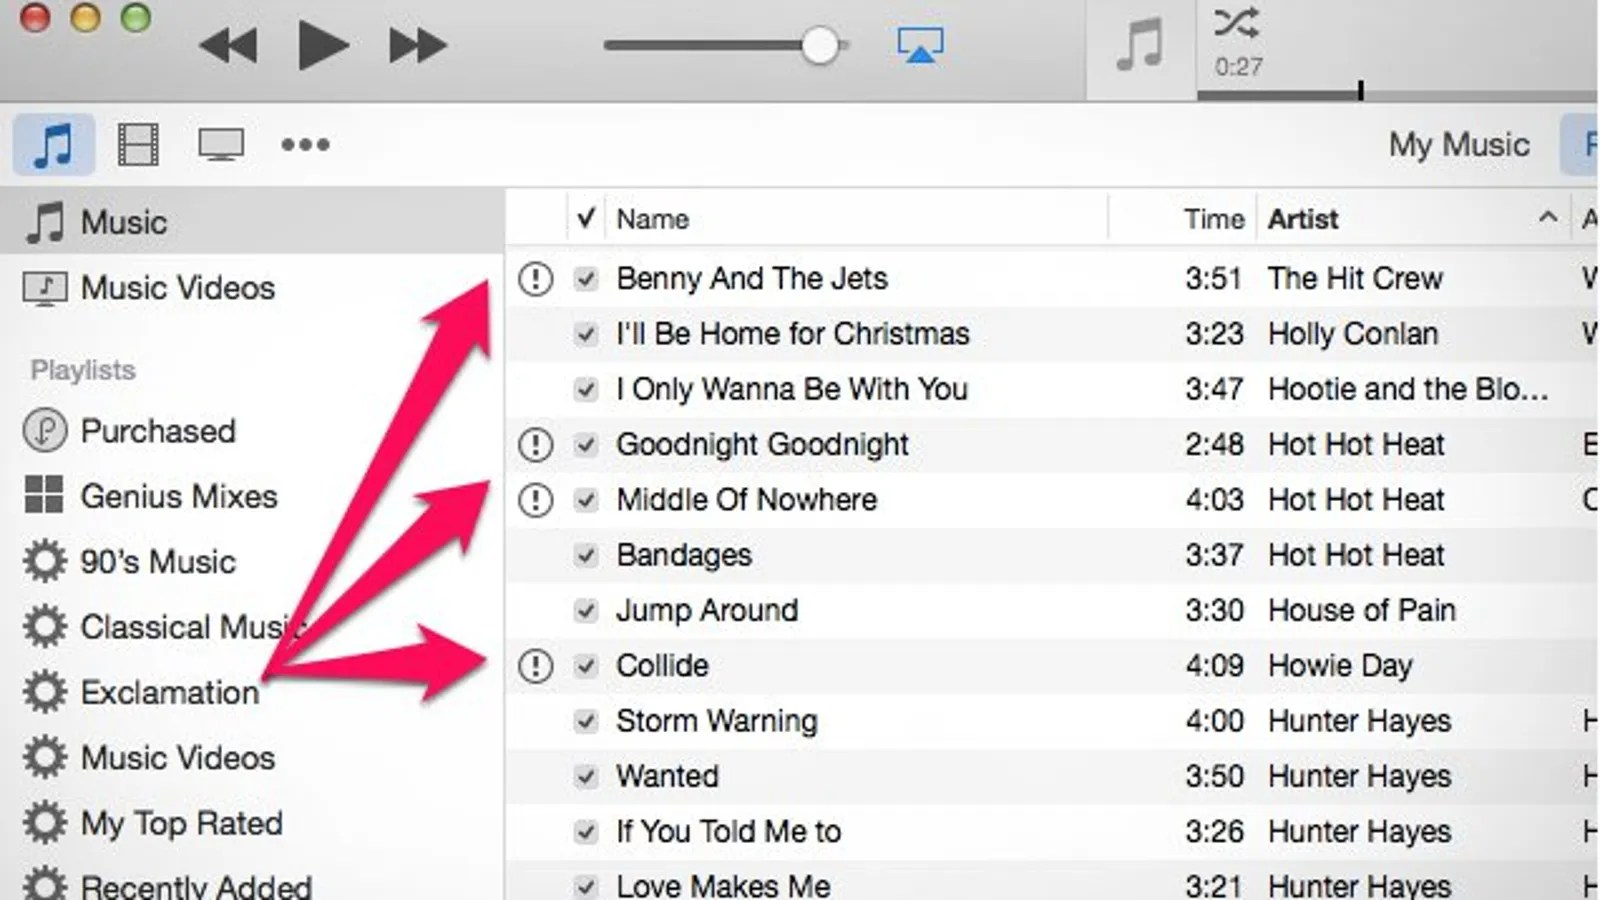 Find And Sort The Missing Exclamation Point Tracks In Itunes